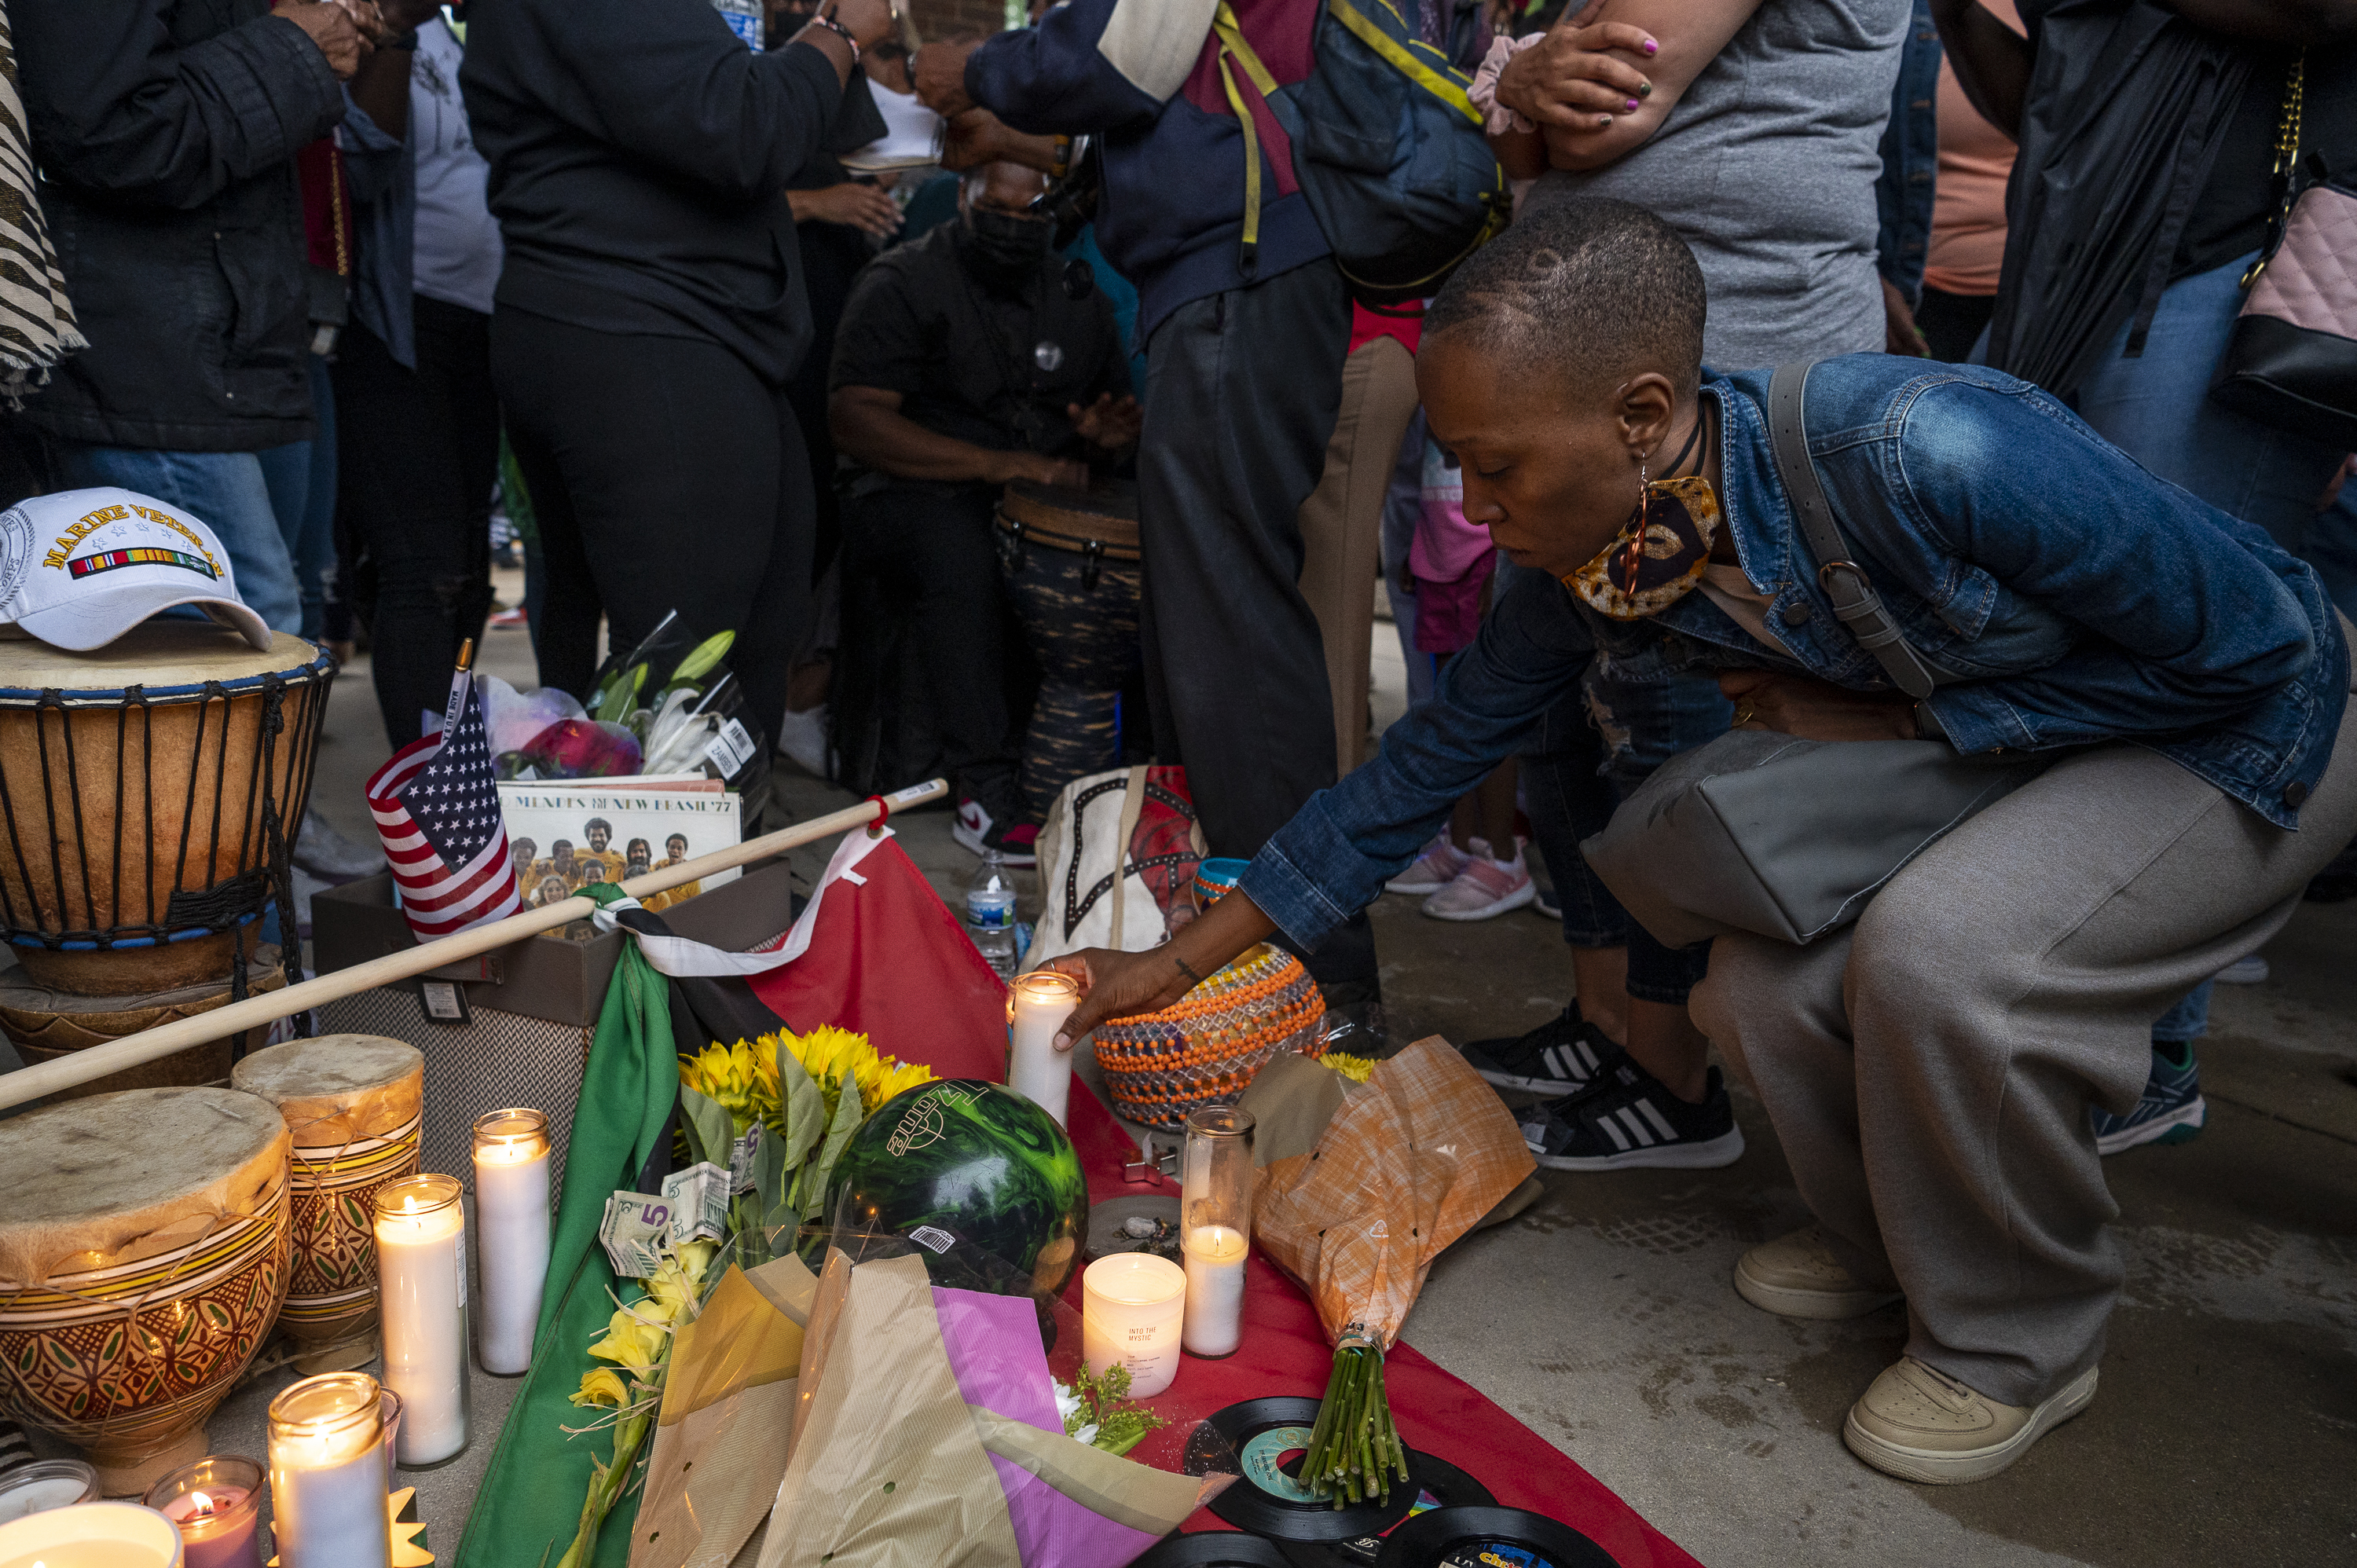 A women places a lit candle next to a memorial set up for Keith Cooper at Kimbark Plaza at 53rd Street and Kimbark Avenue on July 16. Cooper was punched in the head and killed during a attempted carjacking in the plaza.| Tyler LaRiviere/Sun-Times